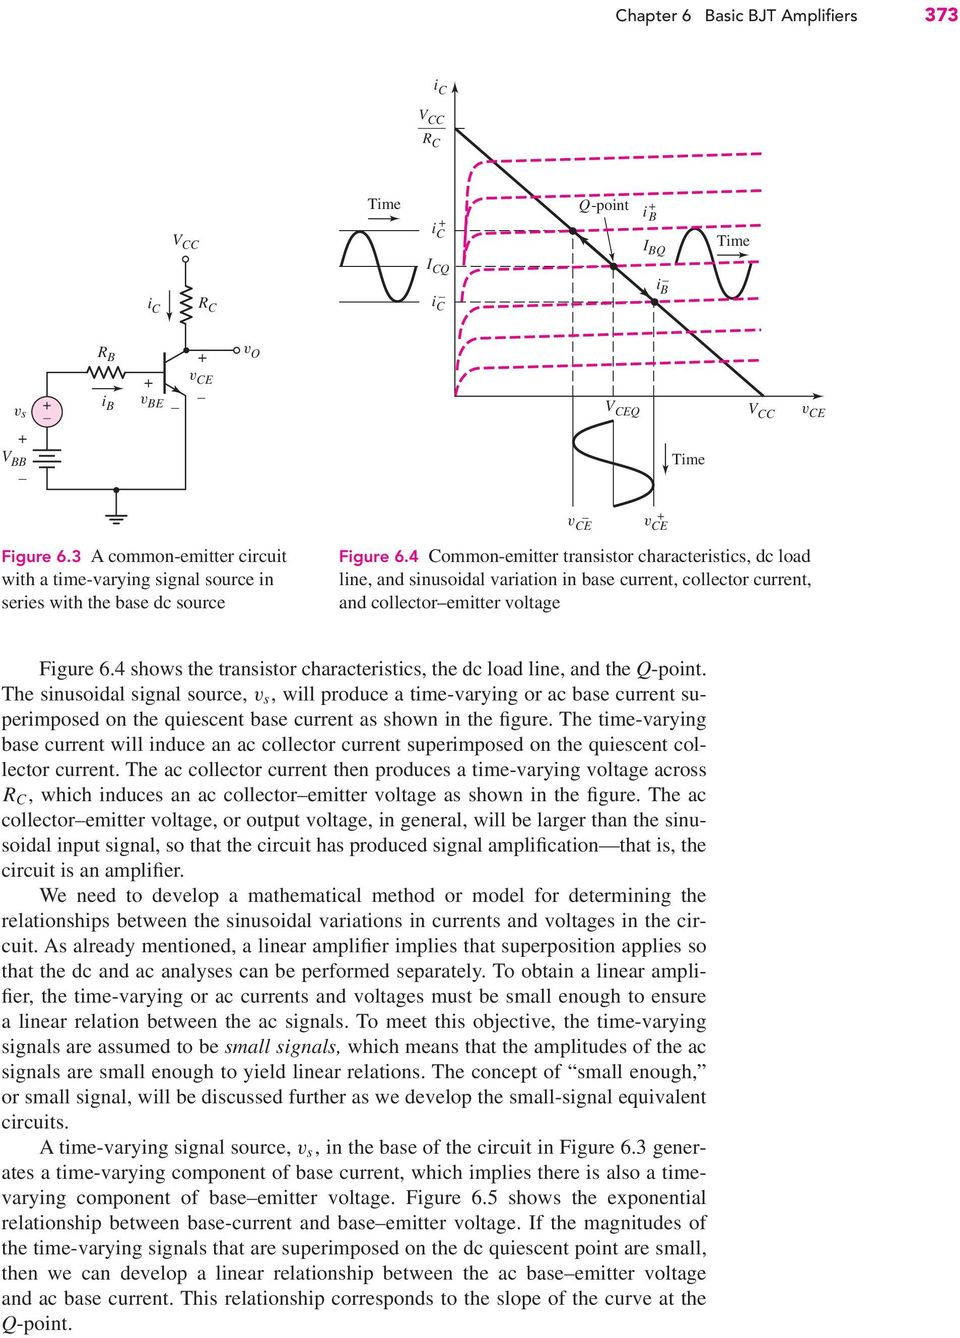 Basic Bjt Amplifiers Chapter Preview Pdf Npn Transistor Wiring Diagram 4 Common Emitter Characteristics Dc Load Line And Sinusoidal Variation In Base